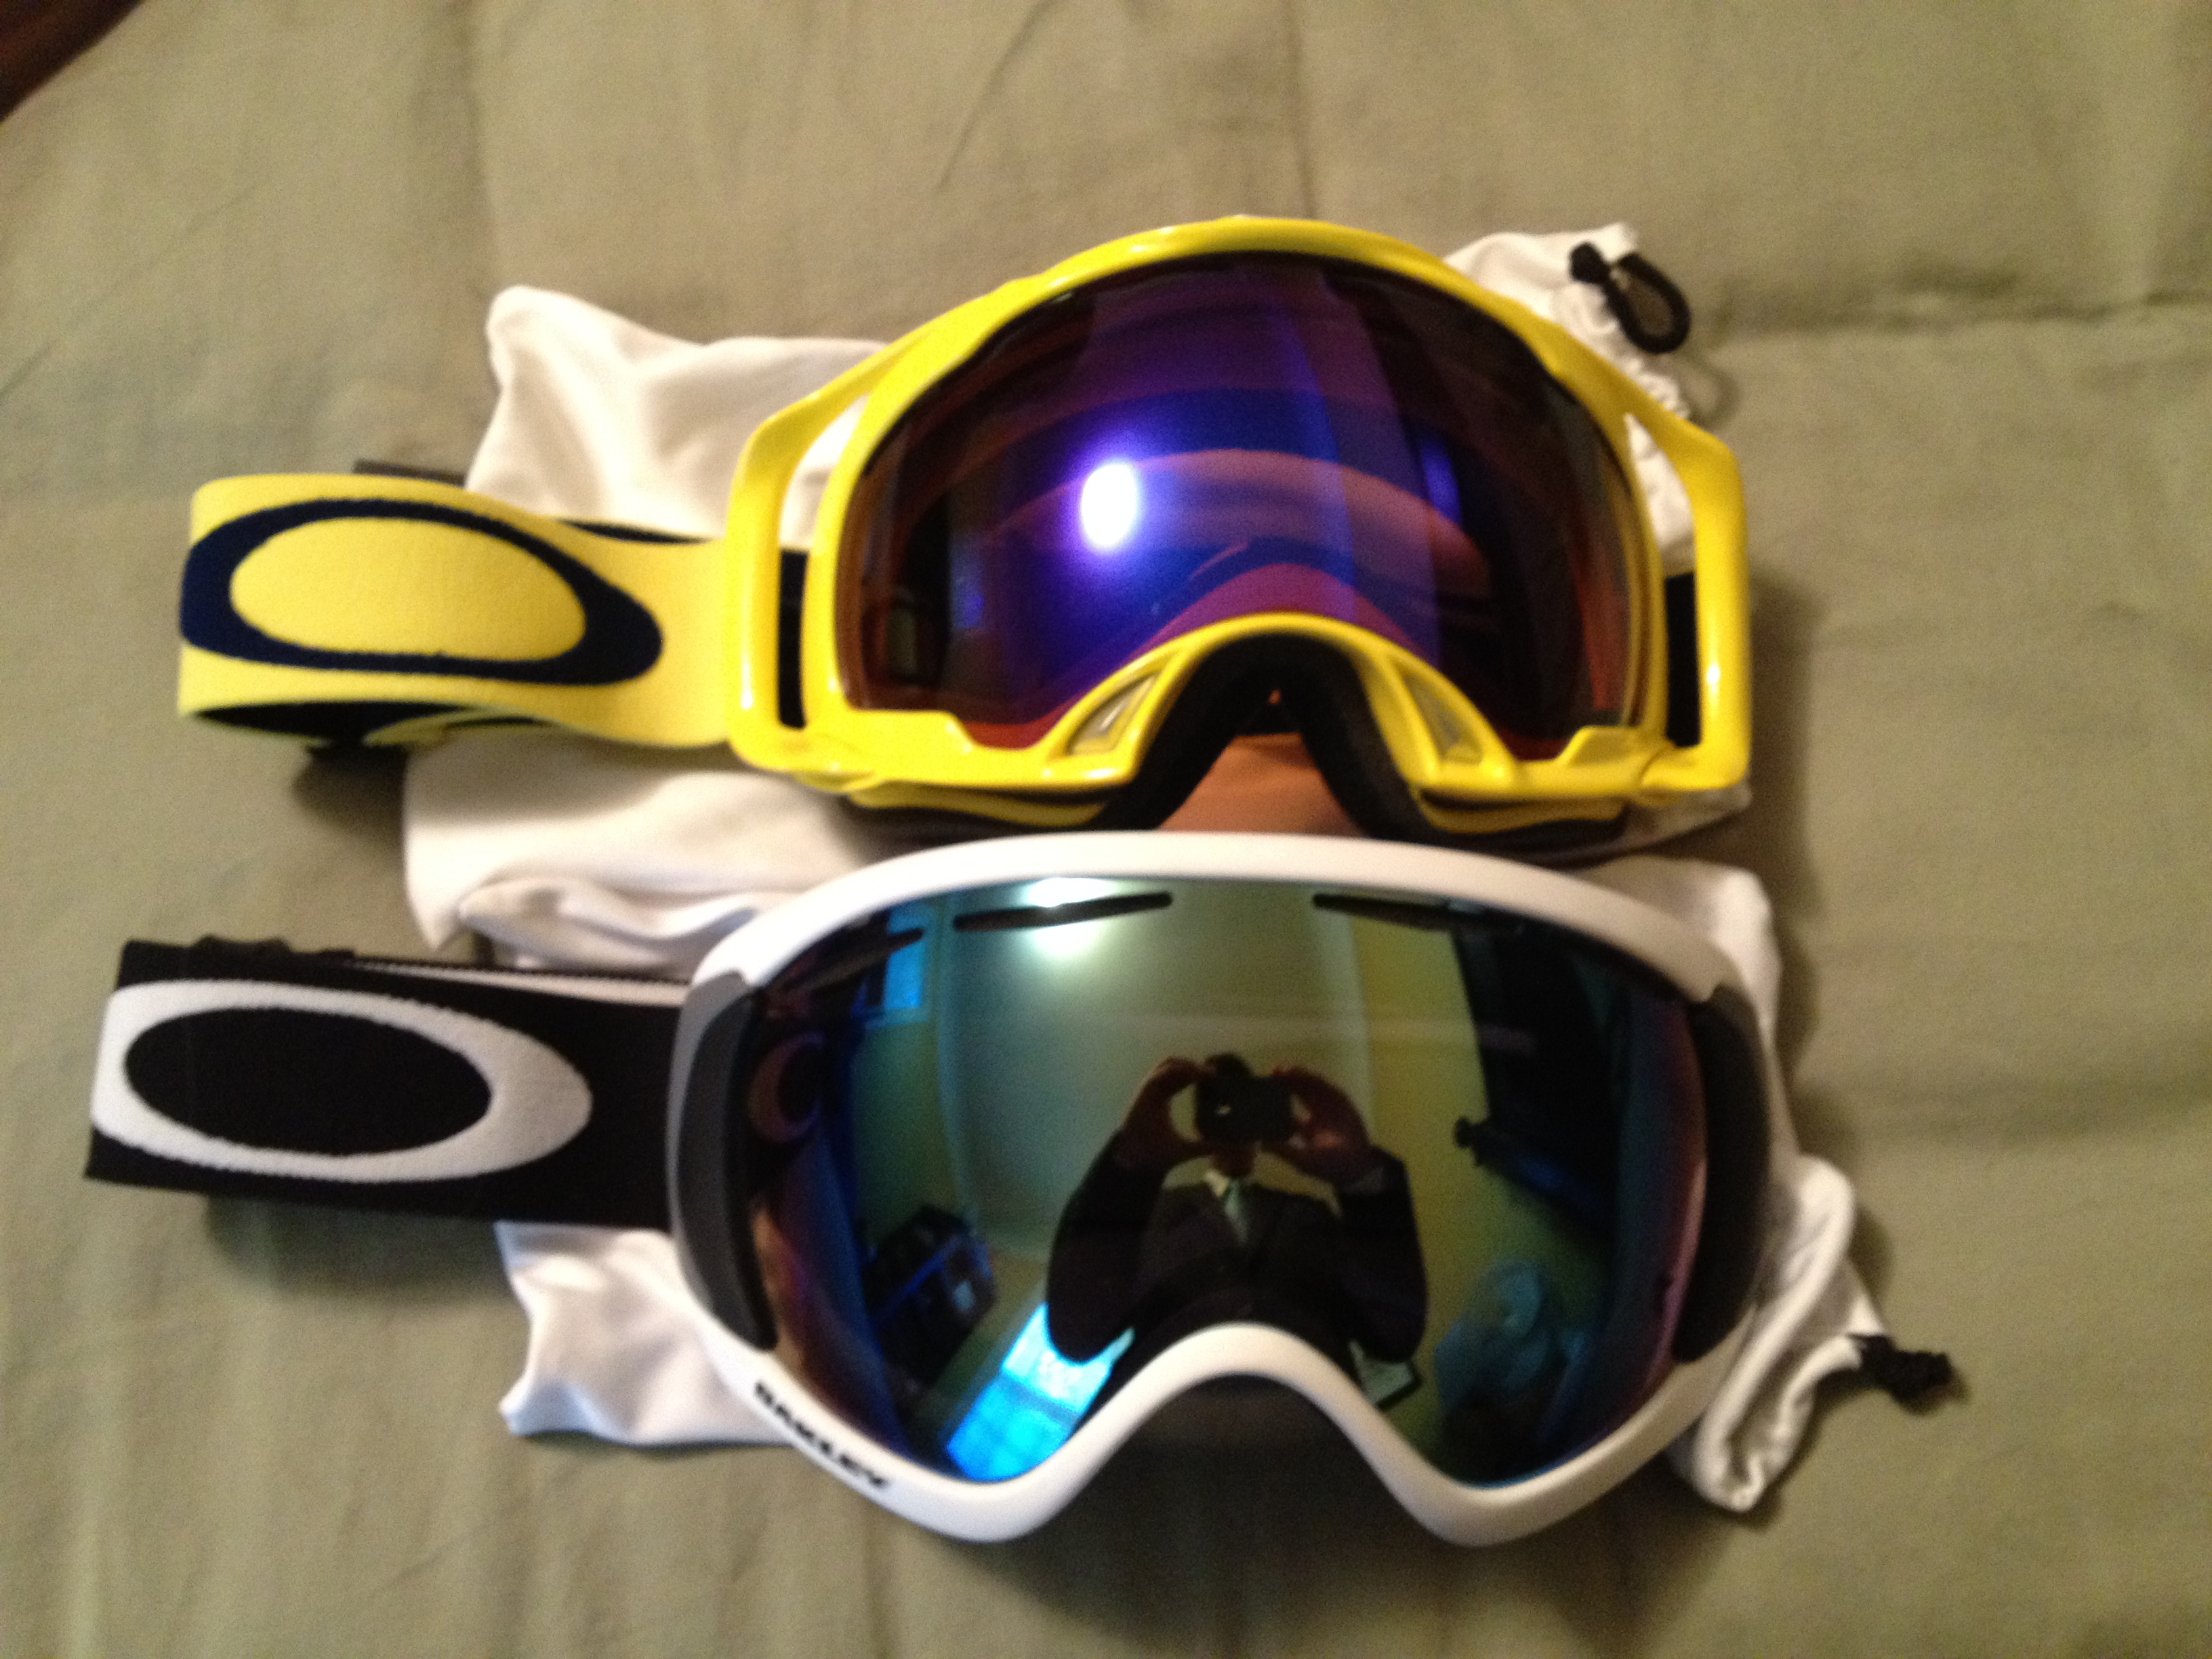 Oakley canopy Bollé Dragon Gopro!! - Sell and Trade - Newschoolers.com & Oakley canopy Bollé Dragon Gopro!! - Sell and Trade ...